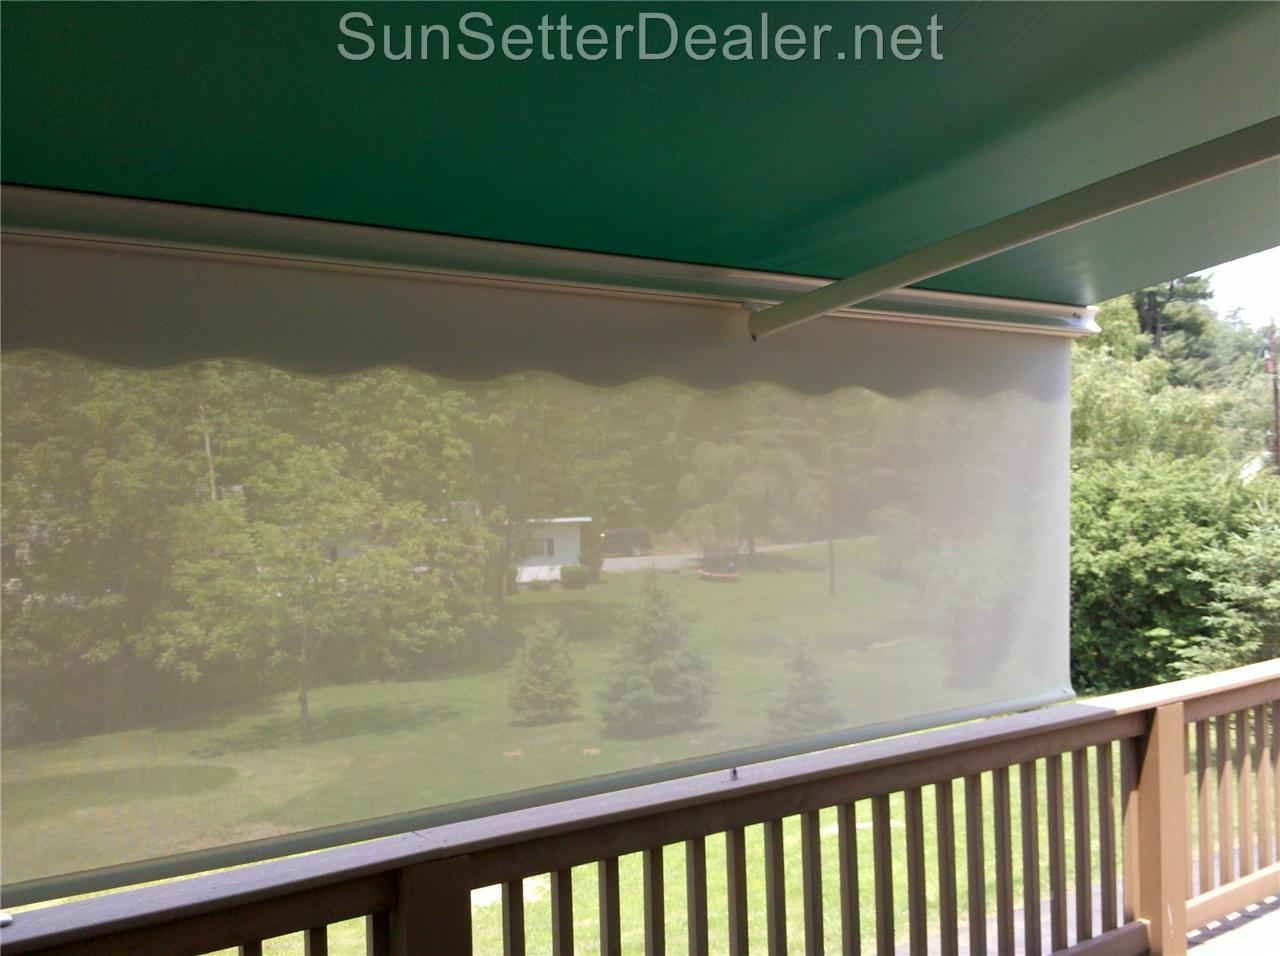 20 ft. SunSetter Motorized Pro Retractable Patio Awning ...